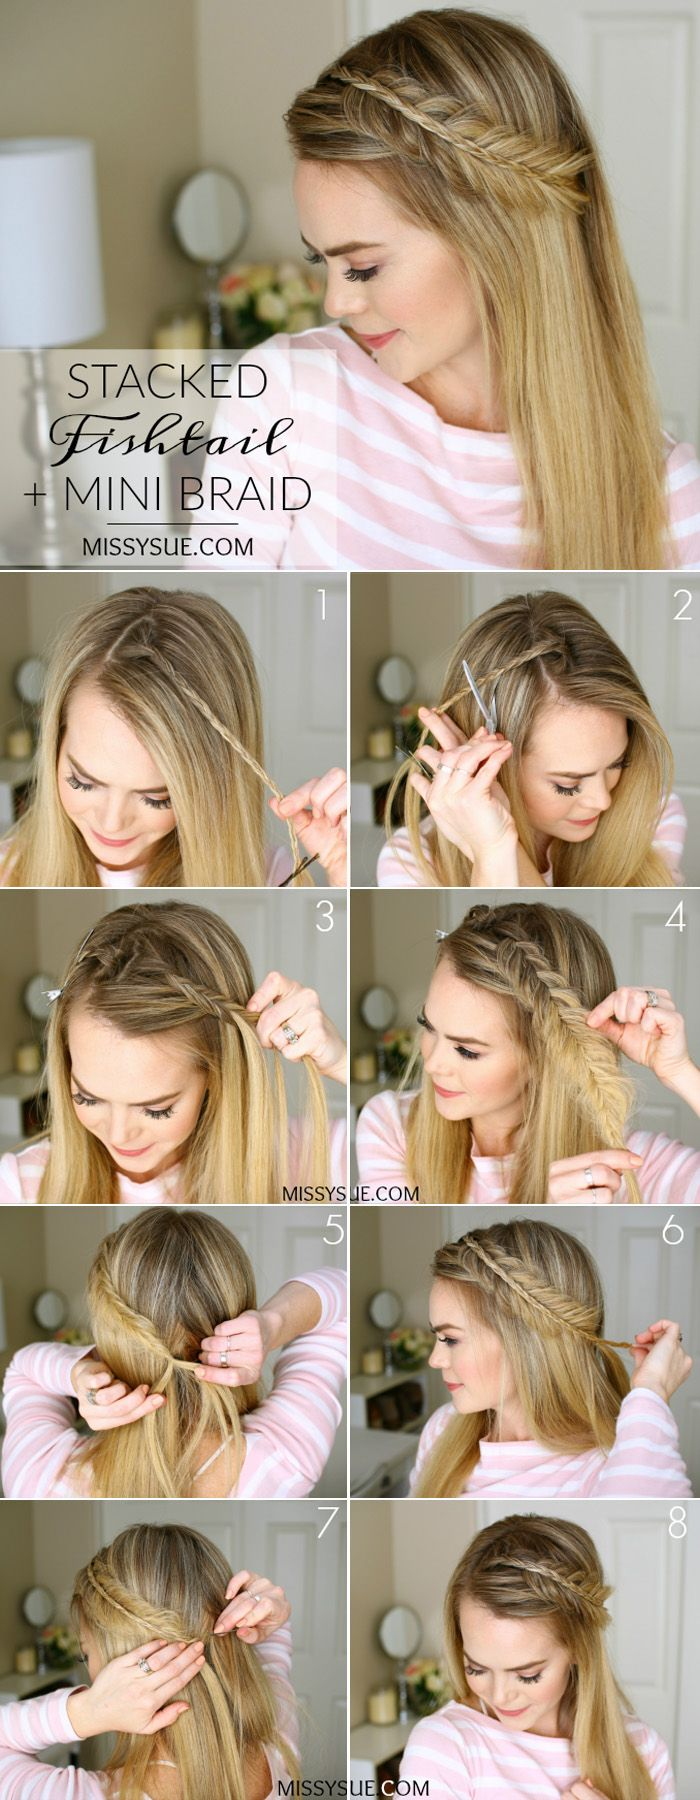 Elegant and stunning stacked fishtail and mini braid for your